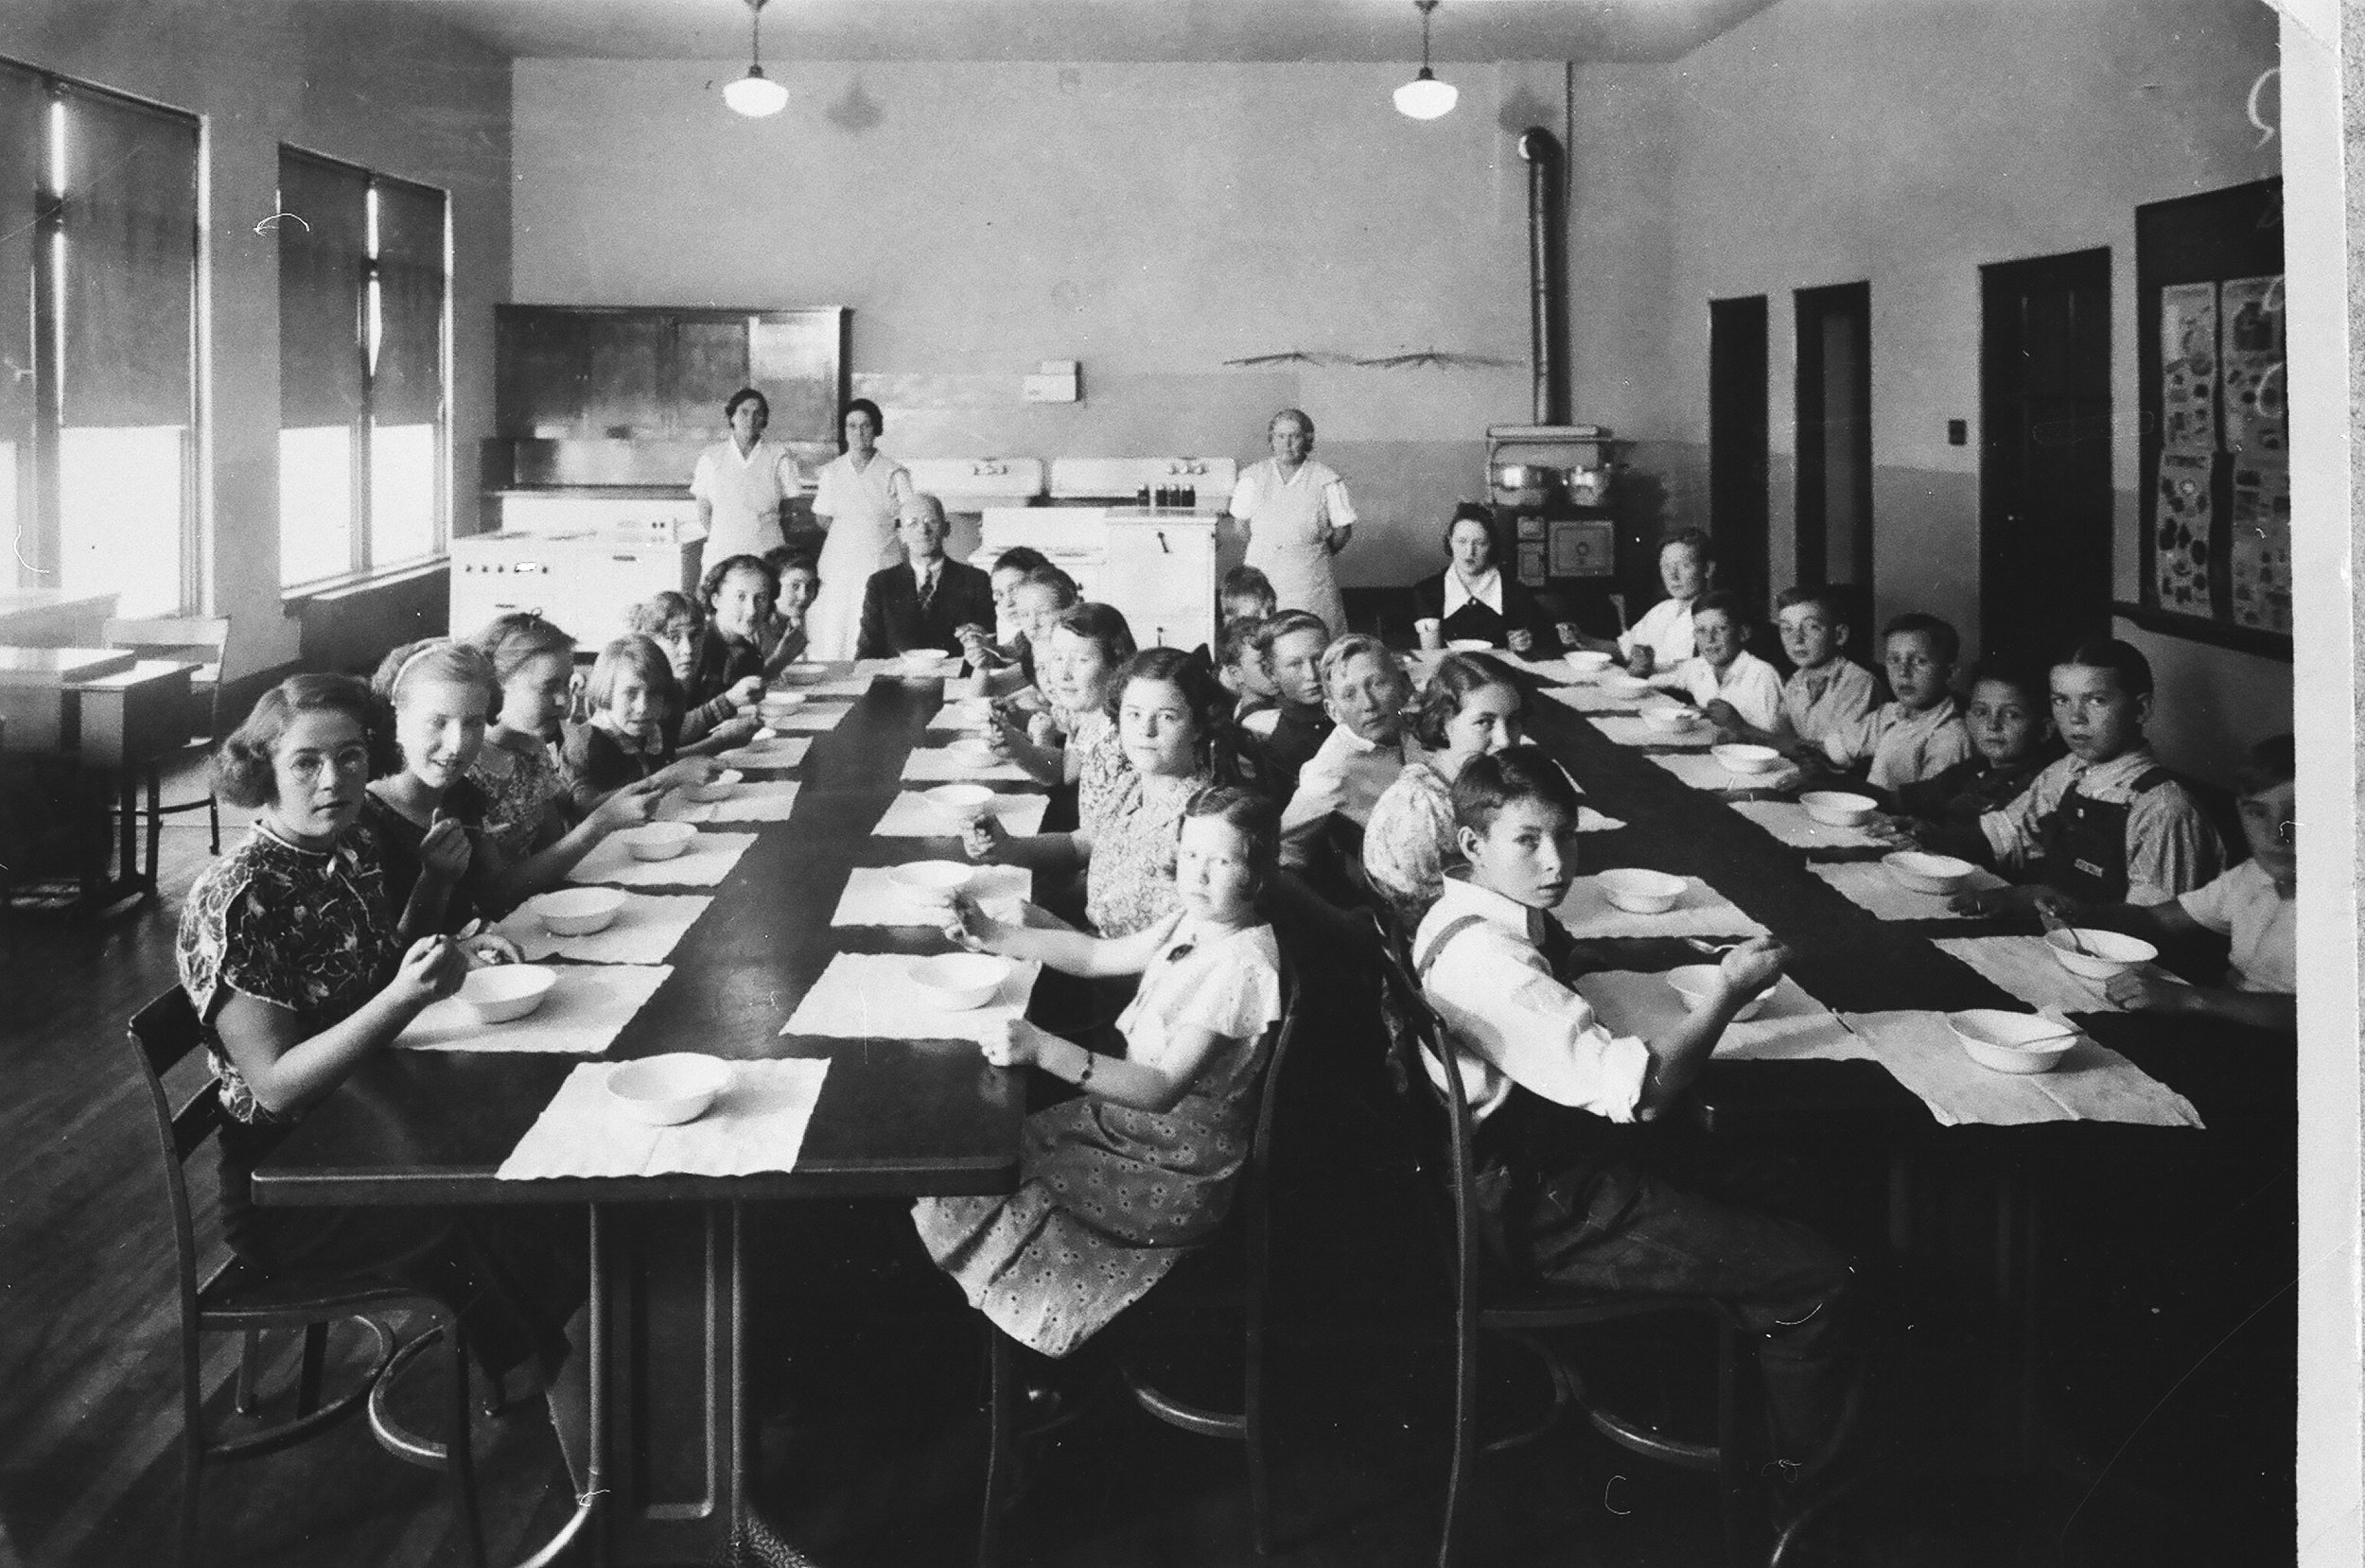 The first hot lunch served at the Salem school to those who didn't have lunch from home. Taken in 1938. My grandpa would've been 11 at the time, although he is not in the picture.  Photo source.